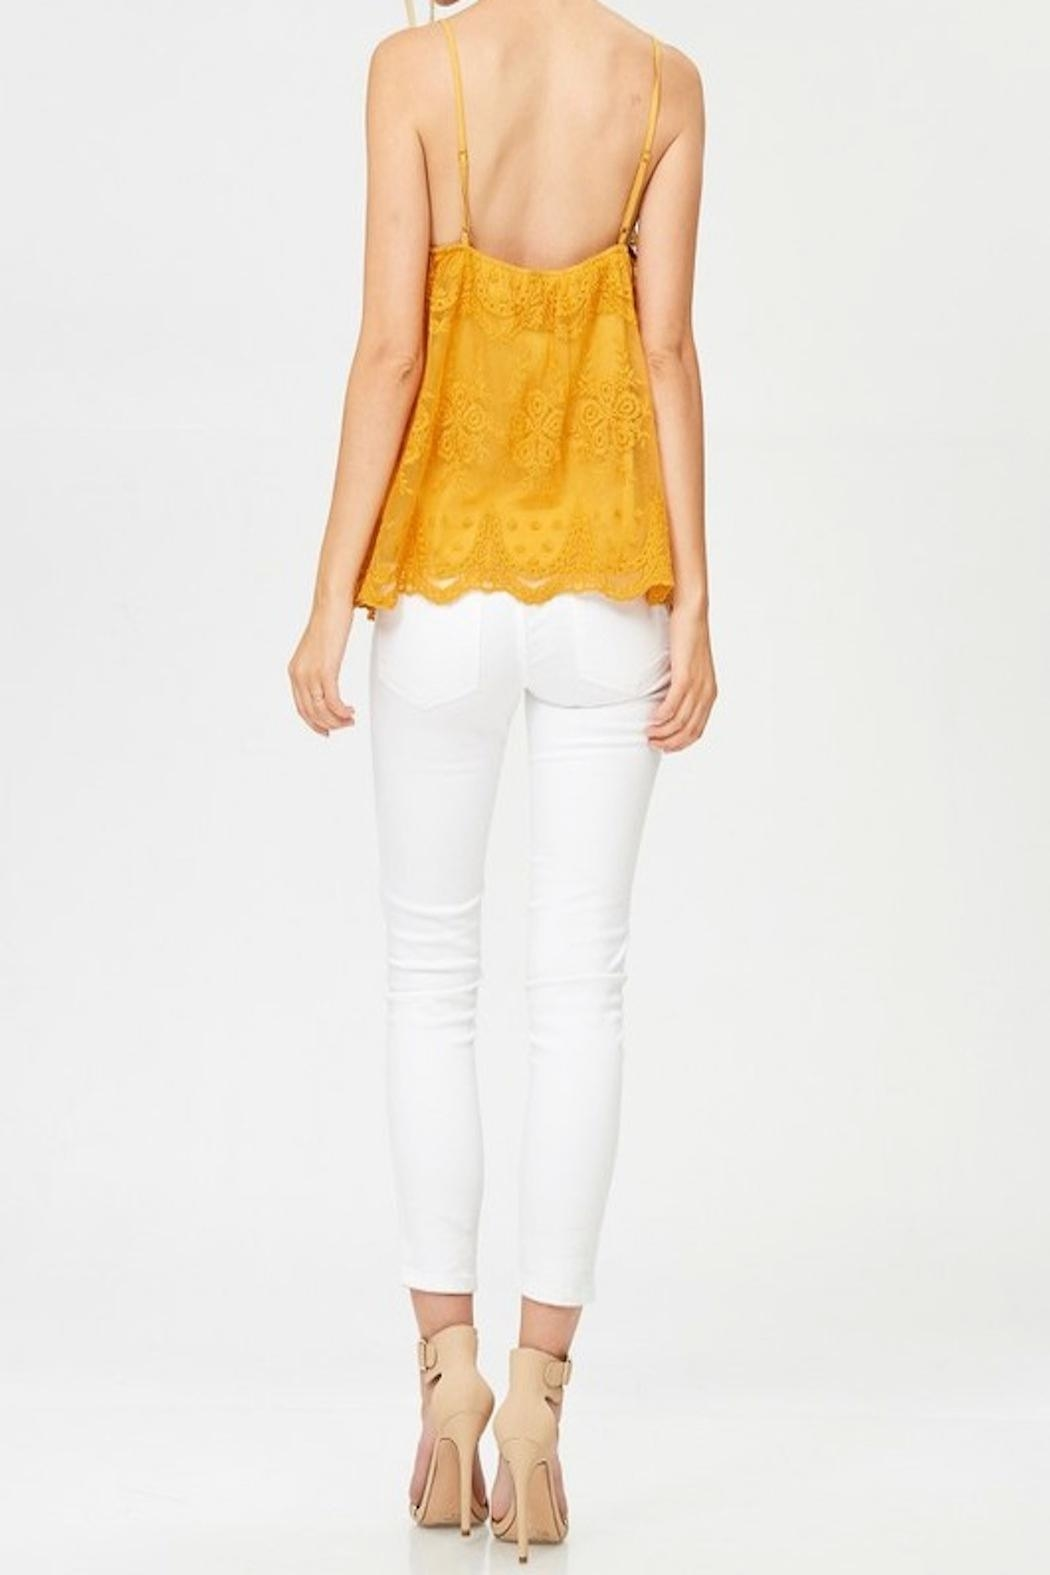 Apricot Lane St. Cloud Lace Button Up Top - Back Cropped Image